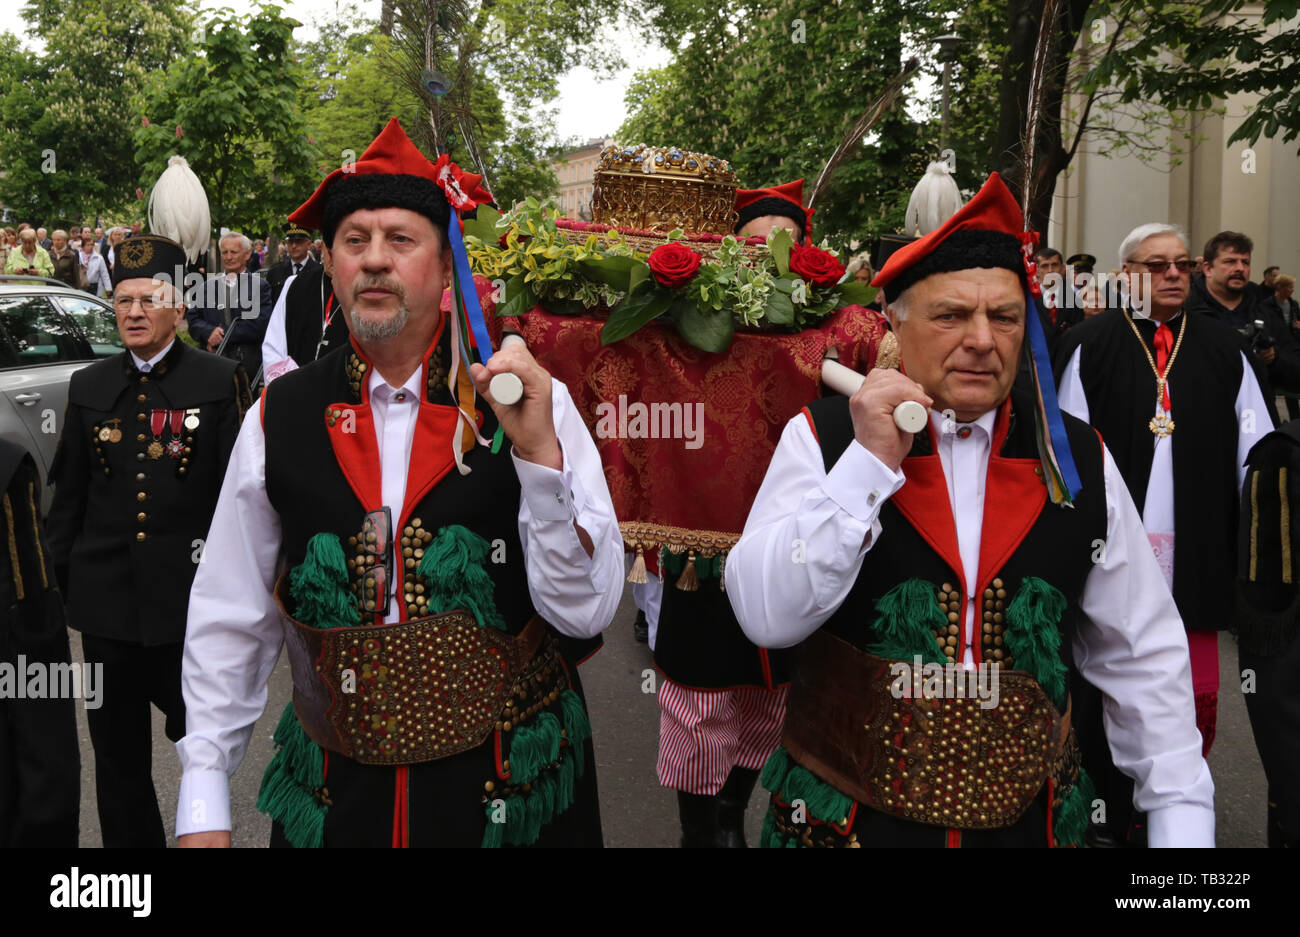 Krakow. Cracow. Poland. St. Stanislaw procession from Wawel to Skalka. Men wearing Krakow regional costumes carry the relic of st. Stanislaw. - Stock Image